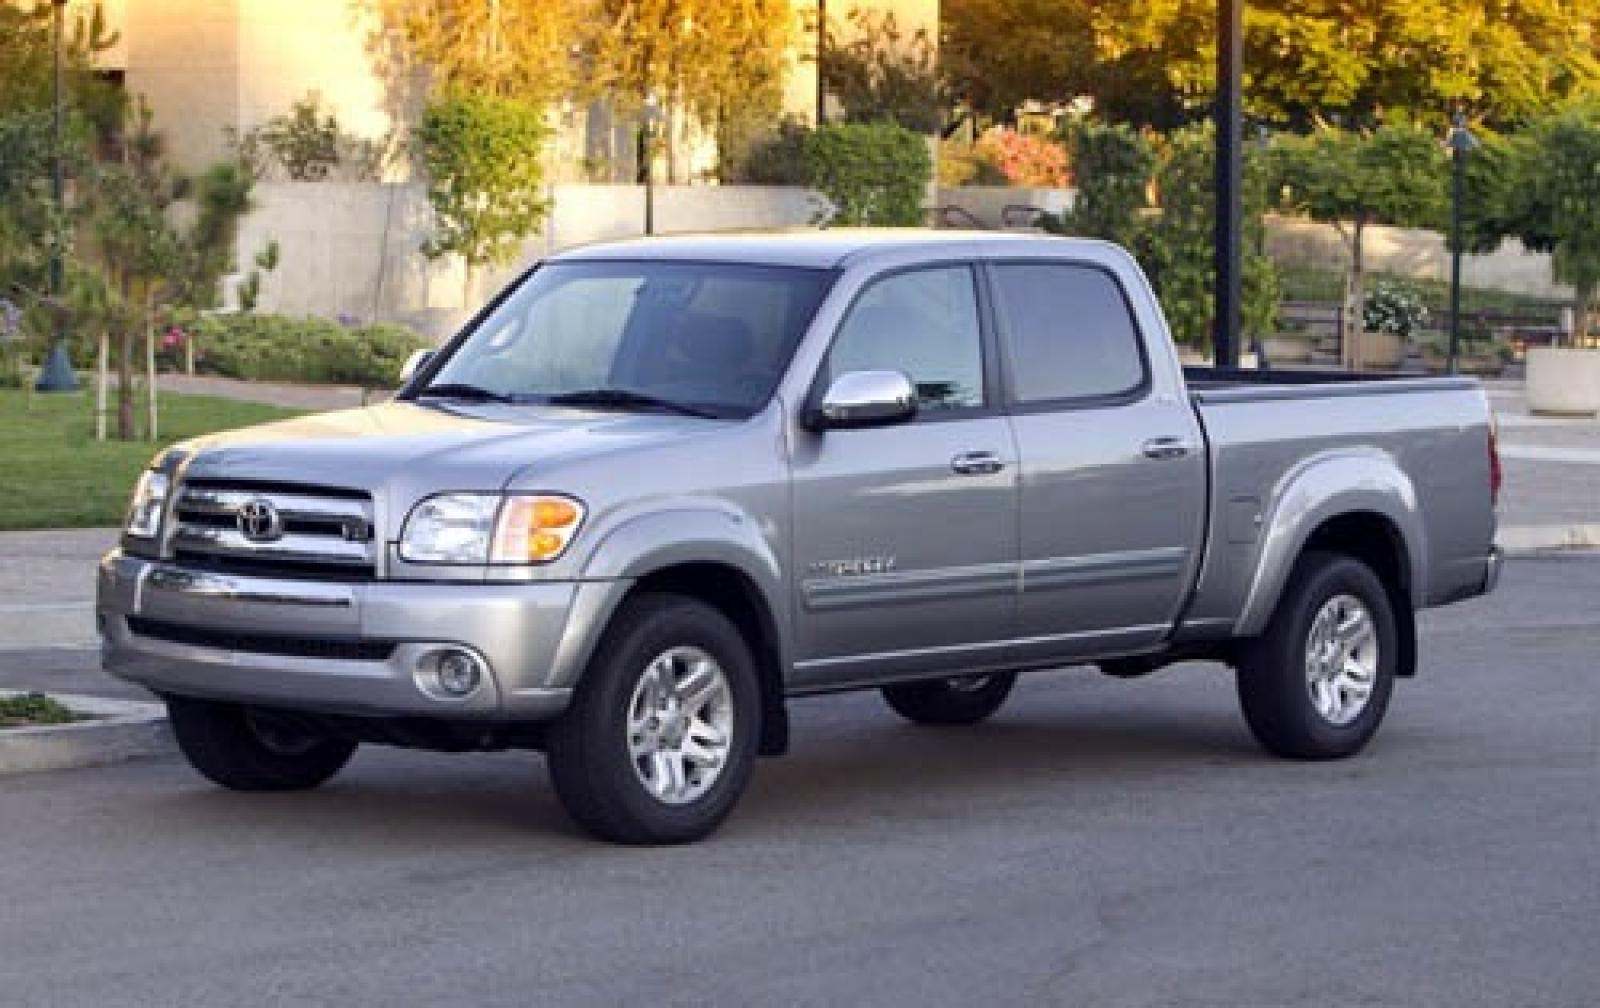 2006 Toyota Tundra Information And Photos Zombiedrive 2004 Double Cab Lifted 800 1024 1280 1600 Origin